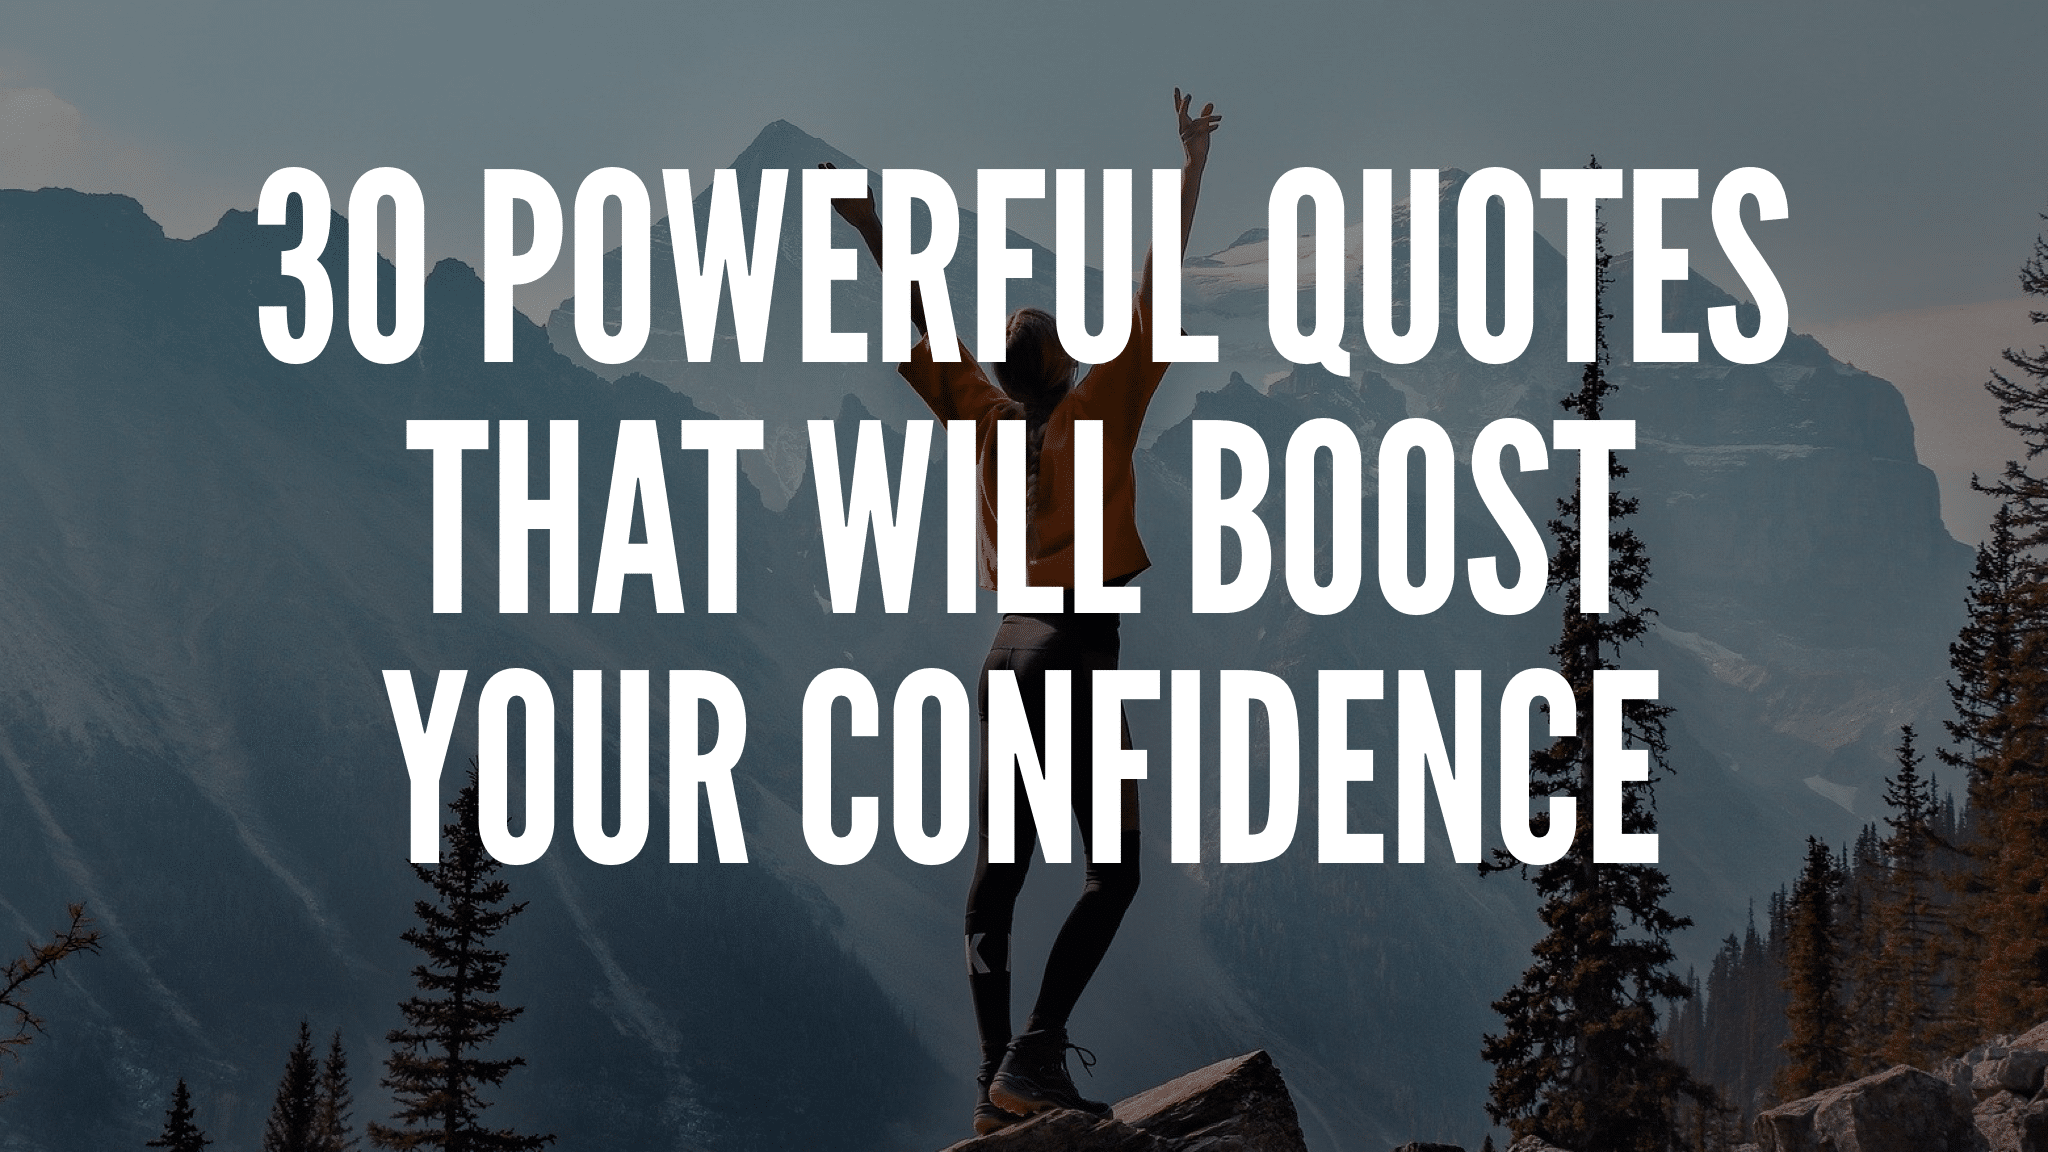 30 Powerful Quotes That Will Boost Your Confidence